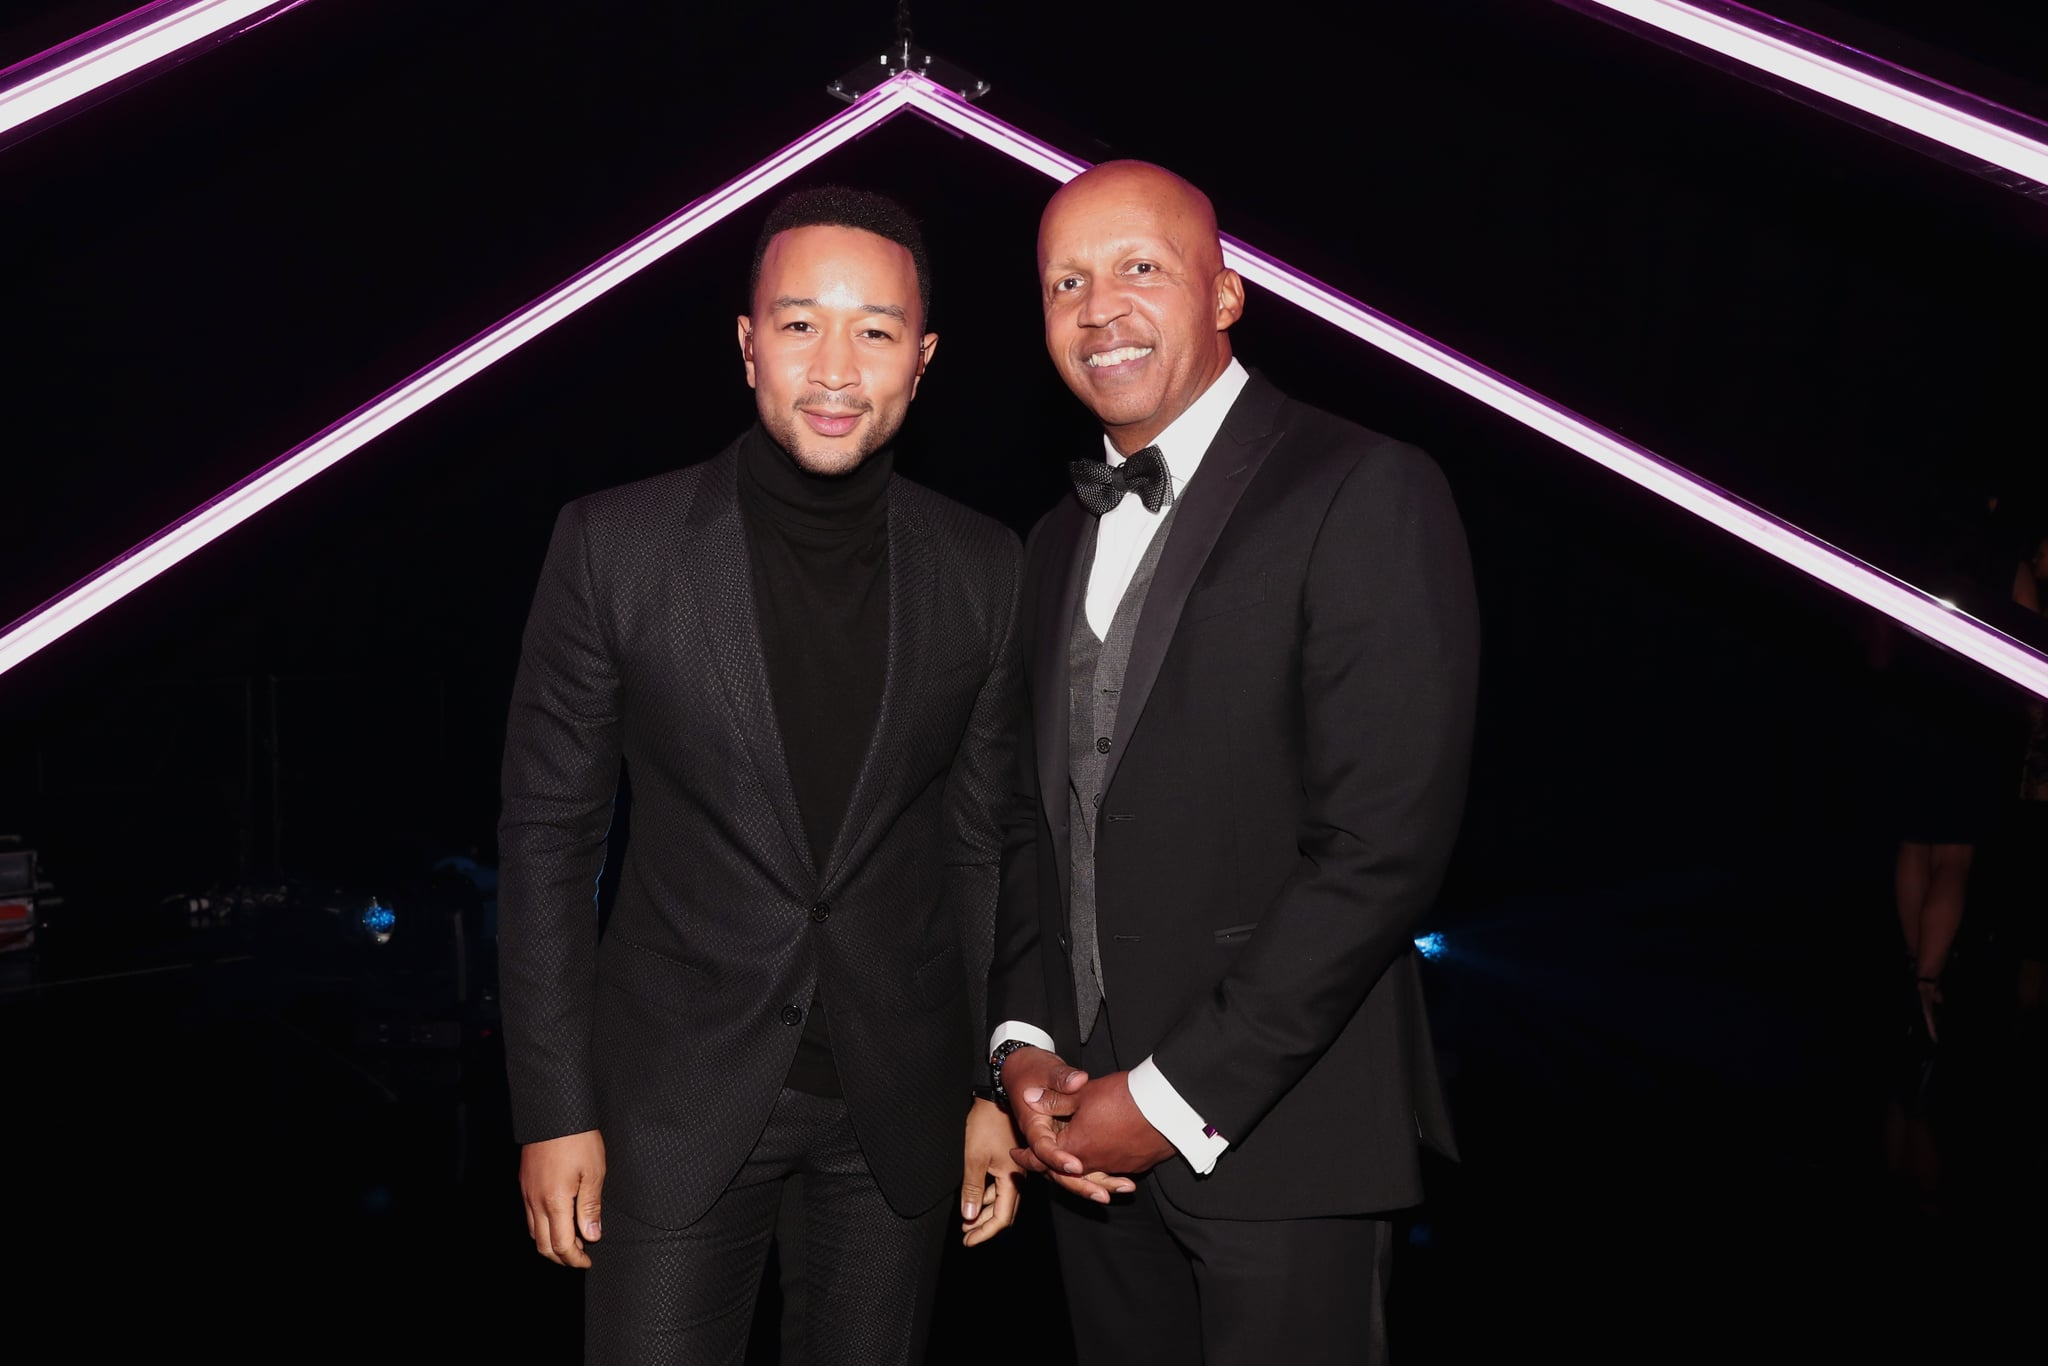 SANTA MONICA, CA - NOVEMBER 11:  2018 E! PEOPLE'S CHOICE AWARDS -- Pictured: (l-r) Recording artist John Legend and People's Champion Award honoree Bryan Stevenson pose during the 2018 E! People's Choice Awards held at the Barker Hangar on November 11, 2018 --  NUP_185072  --  (Photo by Christopher Polk/E! Entertainment/NBCU Photo Bank via Getty Images)